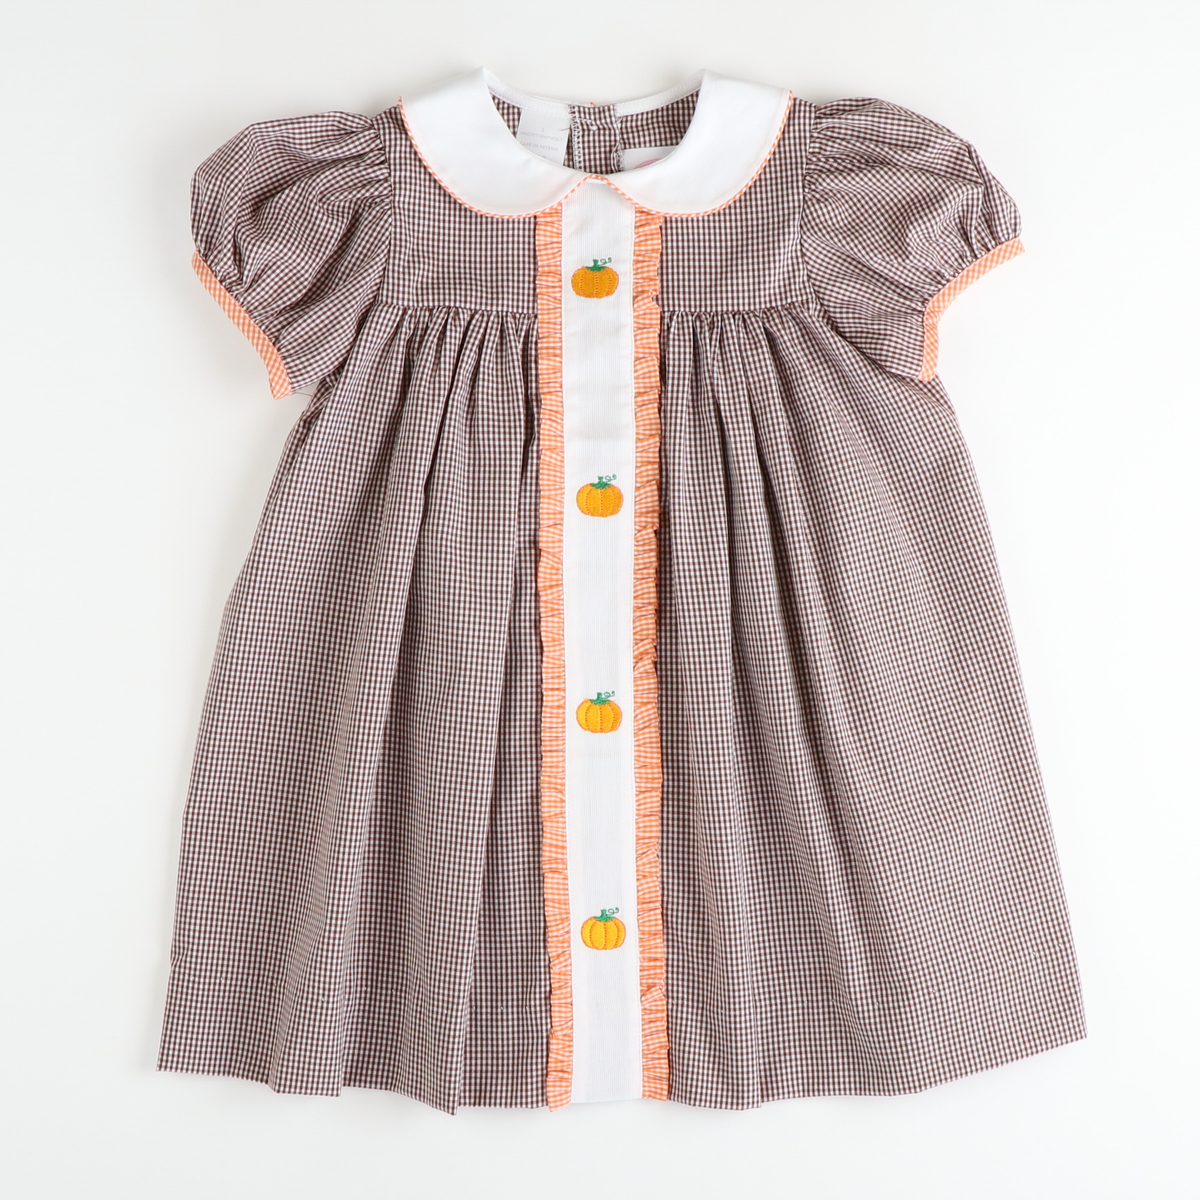 Embroidered Pumpkins Collared Dress - Brown Gingham